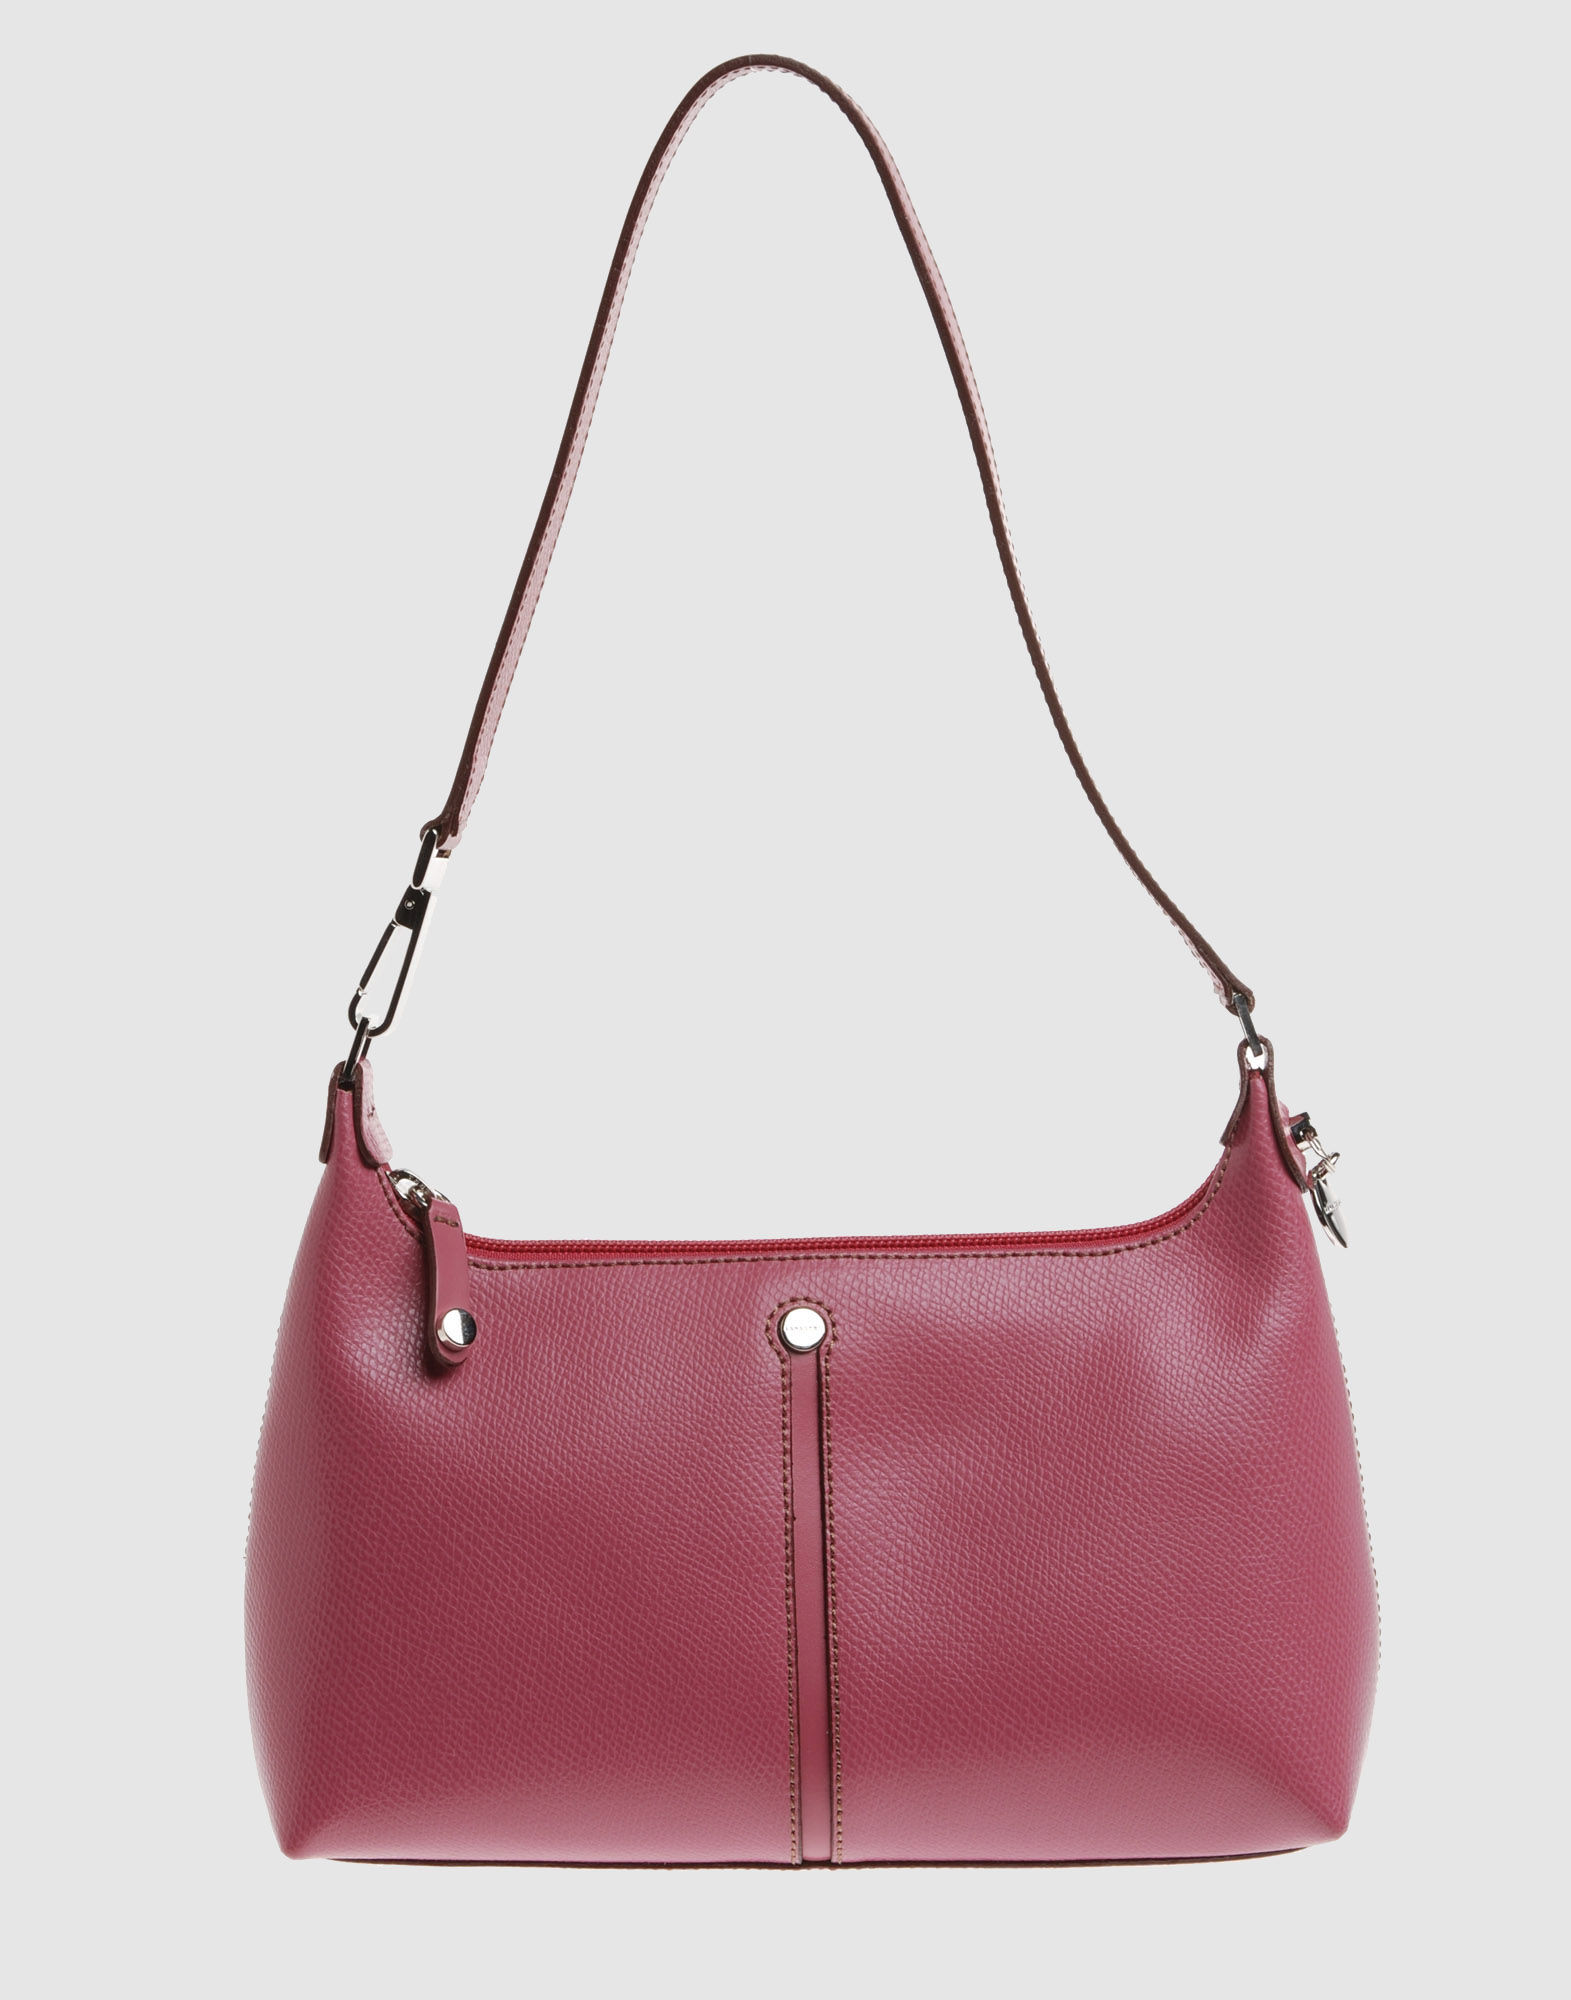 LAMARTHE Women - Handbags - Small leather bag LAMARTHE on YOOX from yoox.com